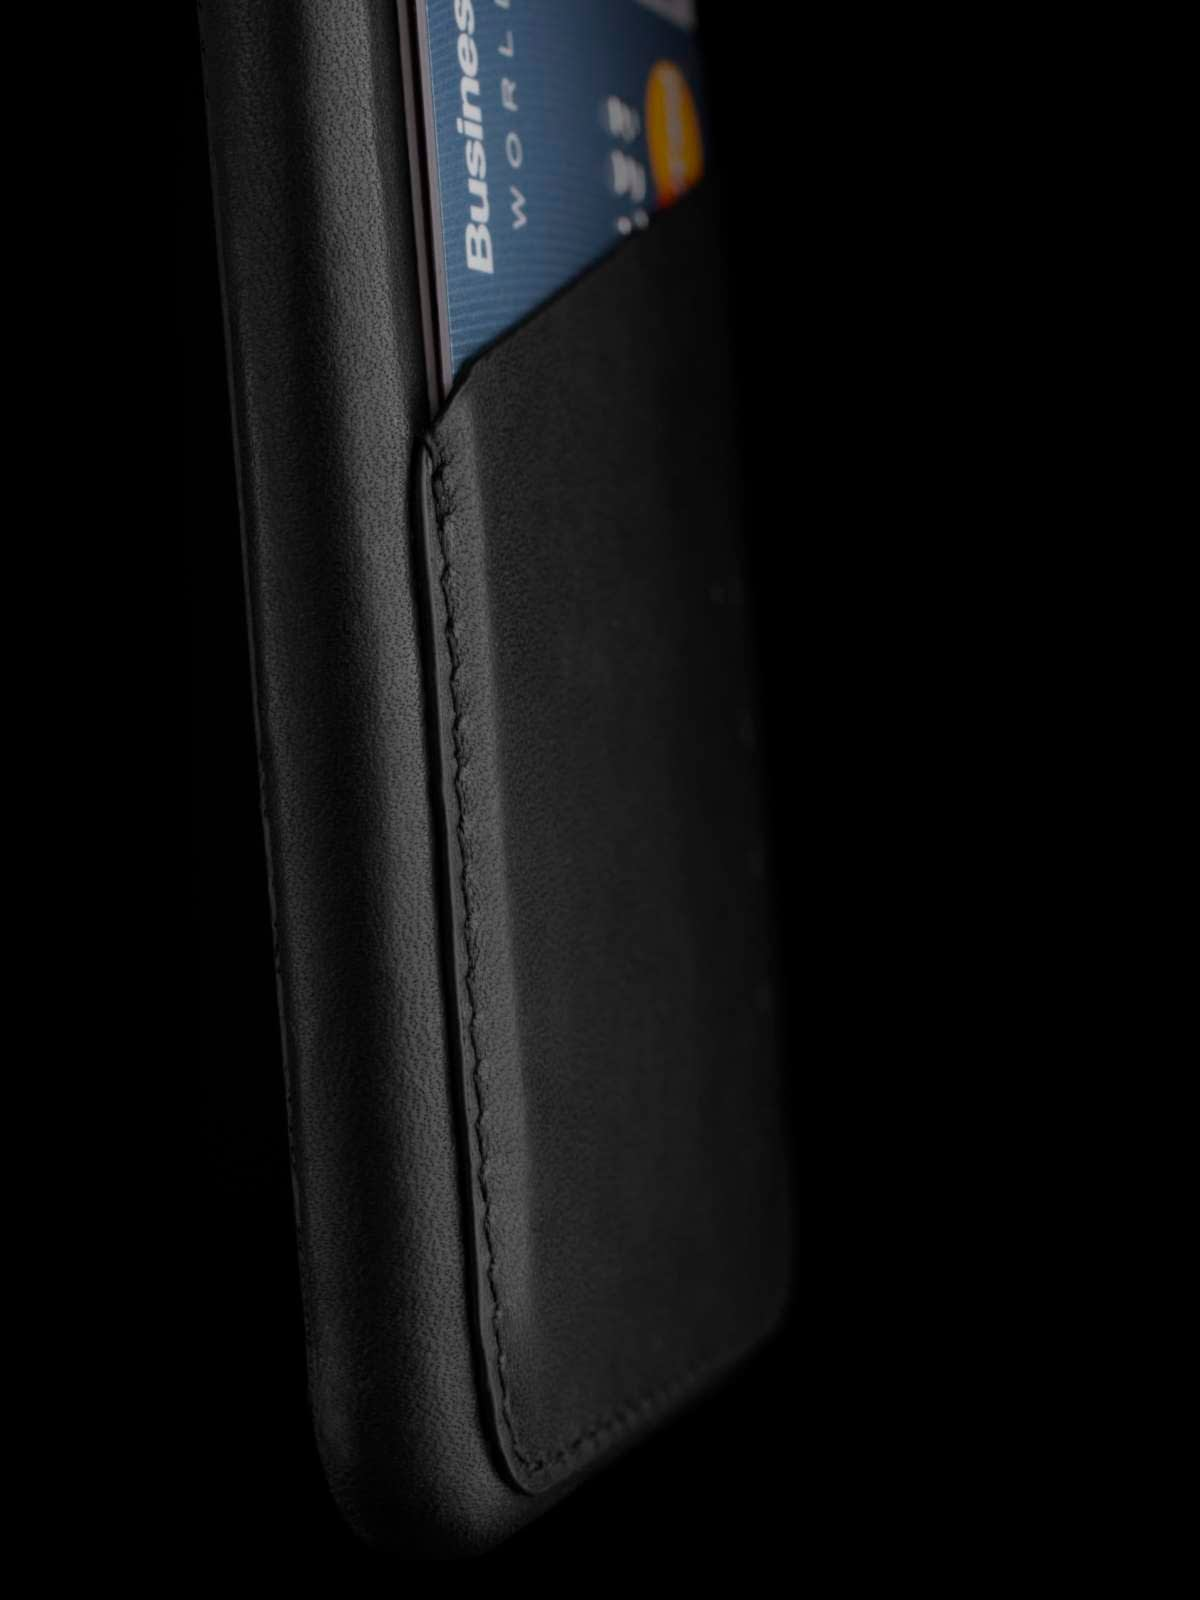 Leather Wallet Case for iPhone 6 Black Lifestyle 005